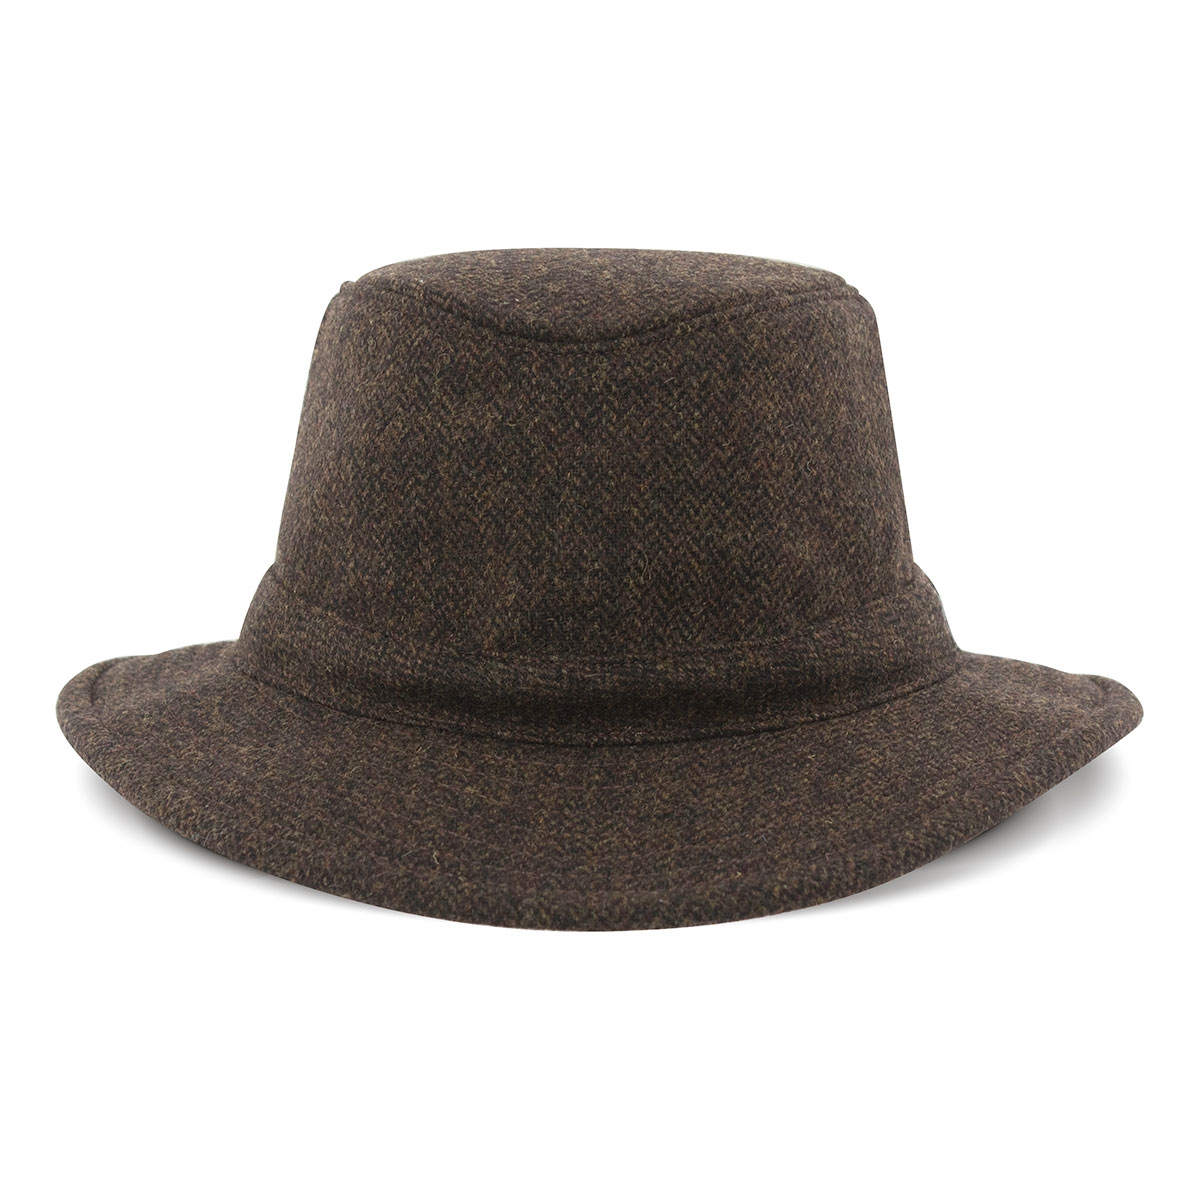 Image of Tilley Medium Curved Brim Winter Hat - Tec-Wool - Olive  Herringbone. « 1eff5d21e66